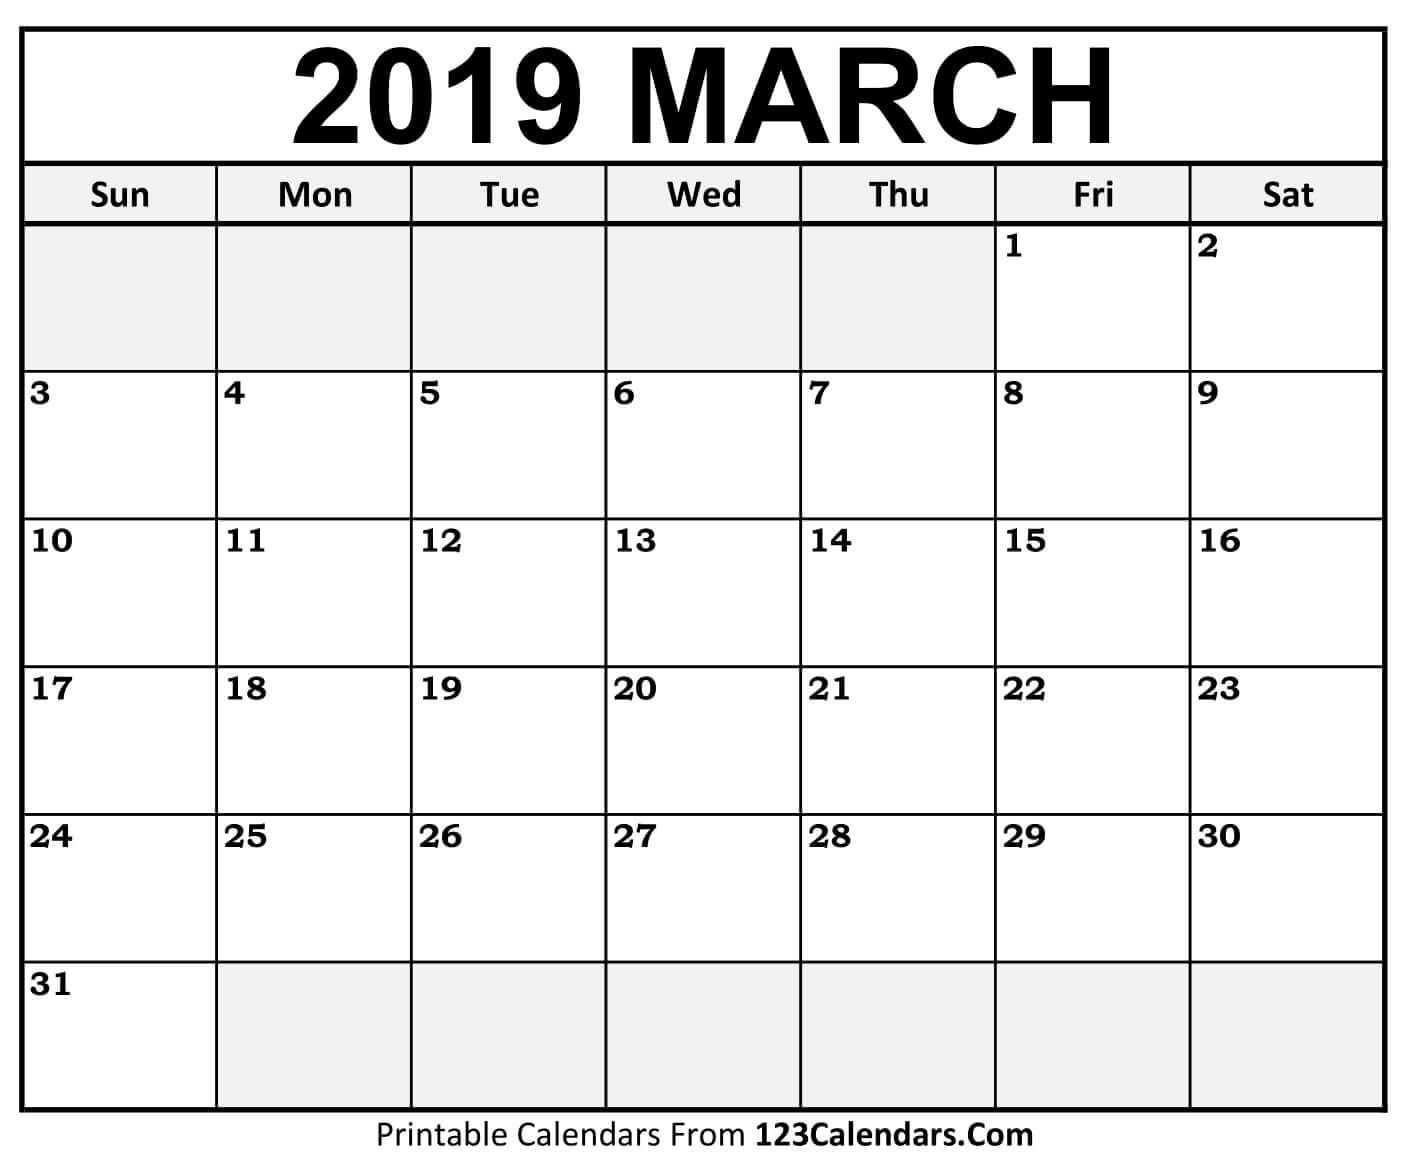 March 2019 Printable Calendar | Free March 2019 Calendar Printable intended for Free Blank Calendar Templates To Print